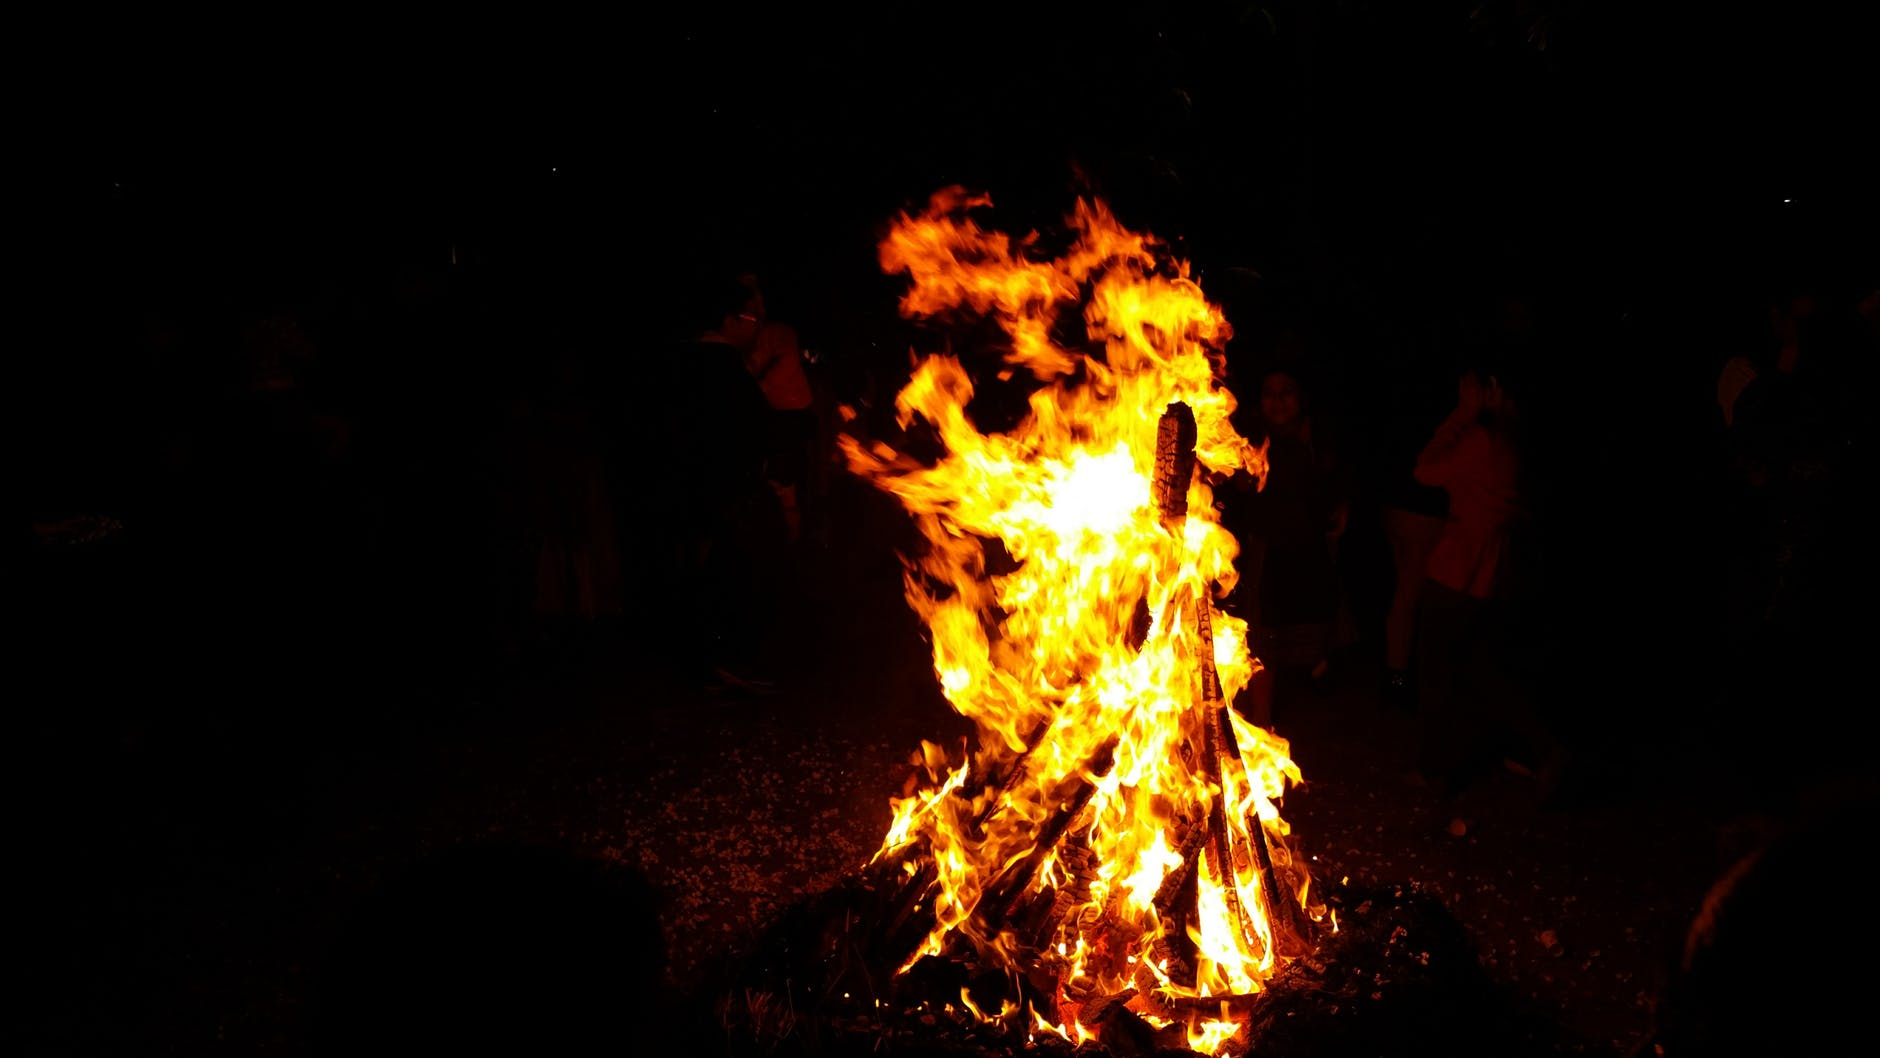 blaze blazing bonfire burn